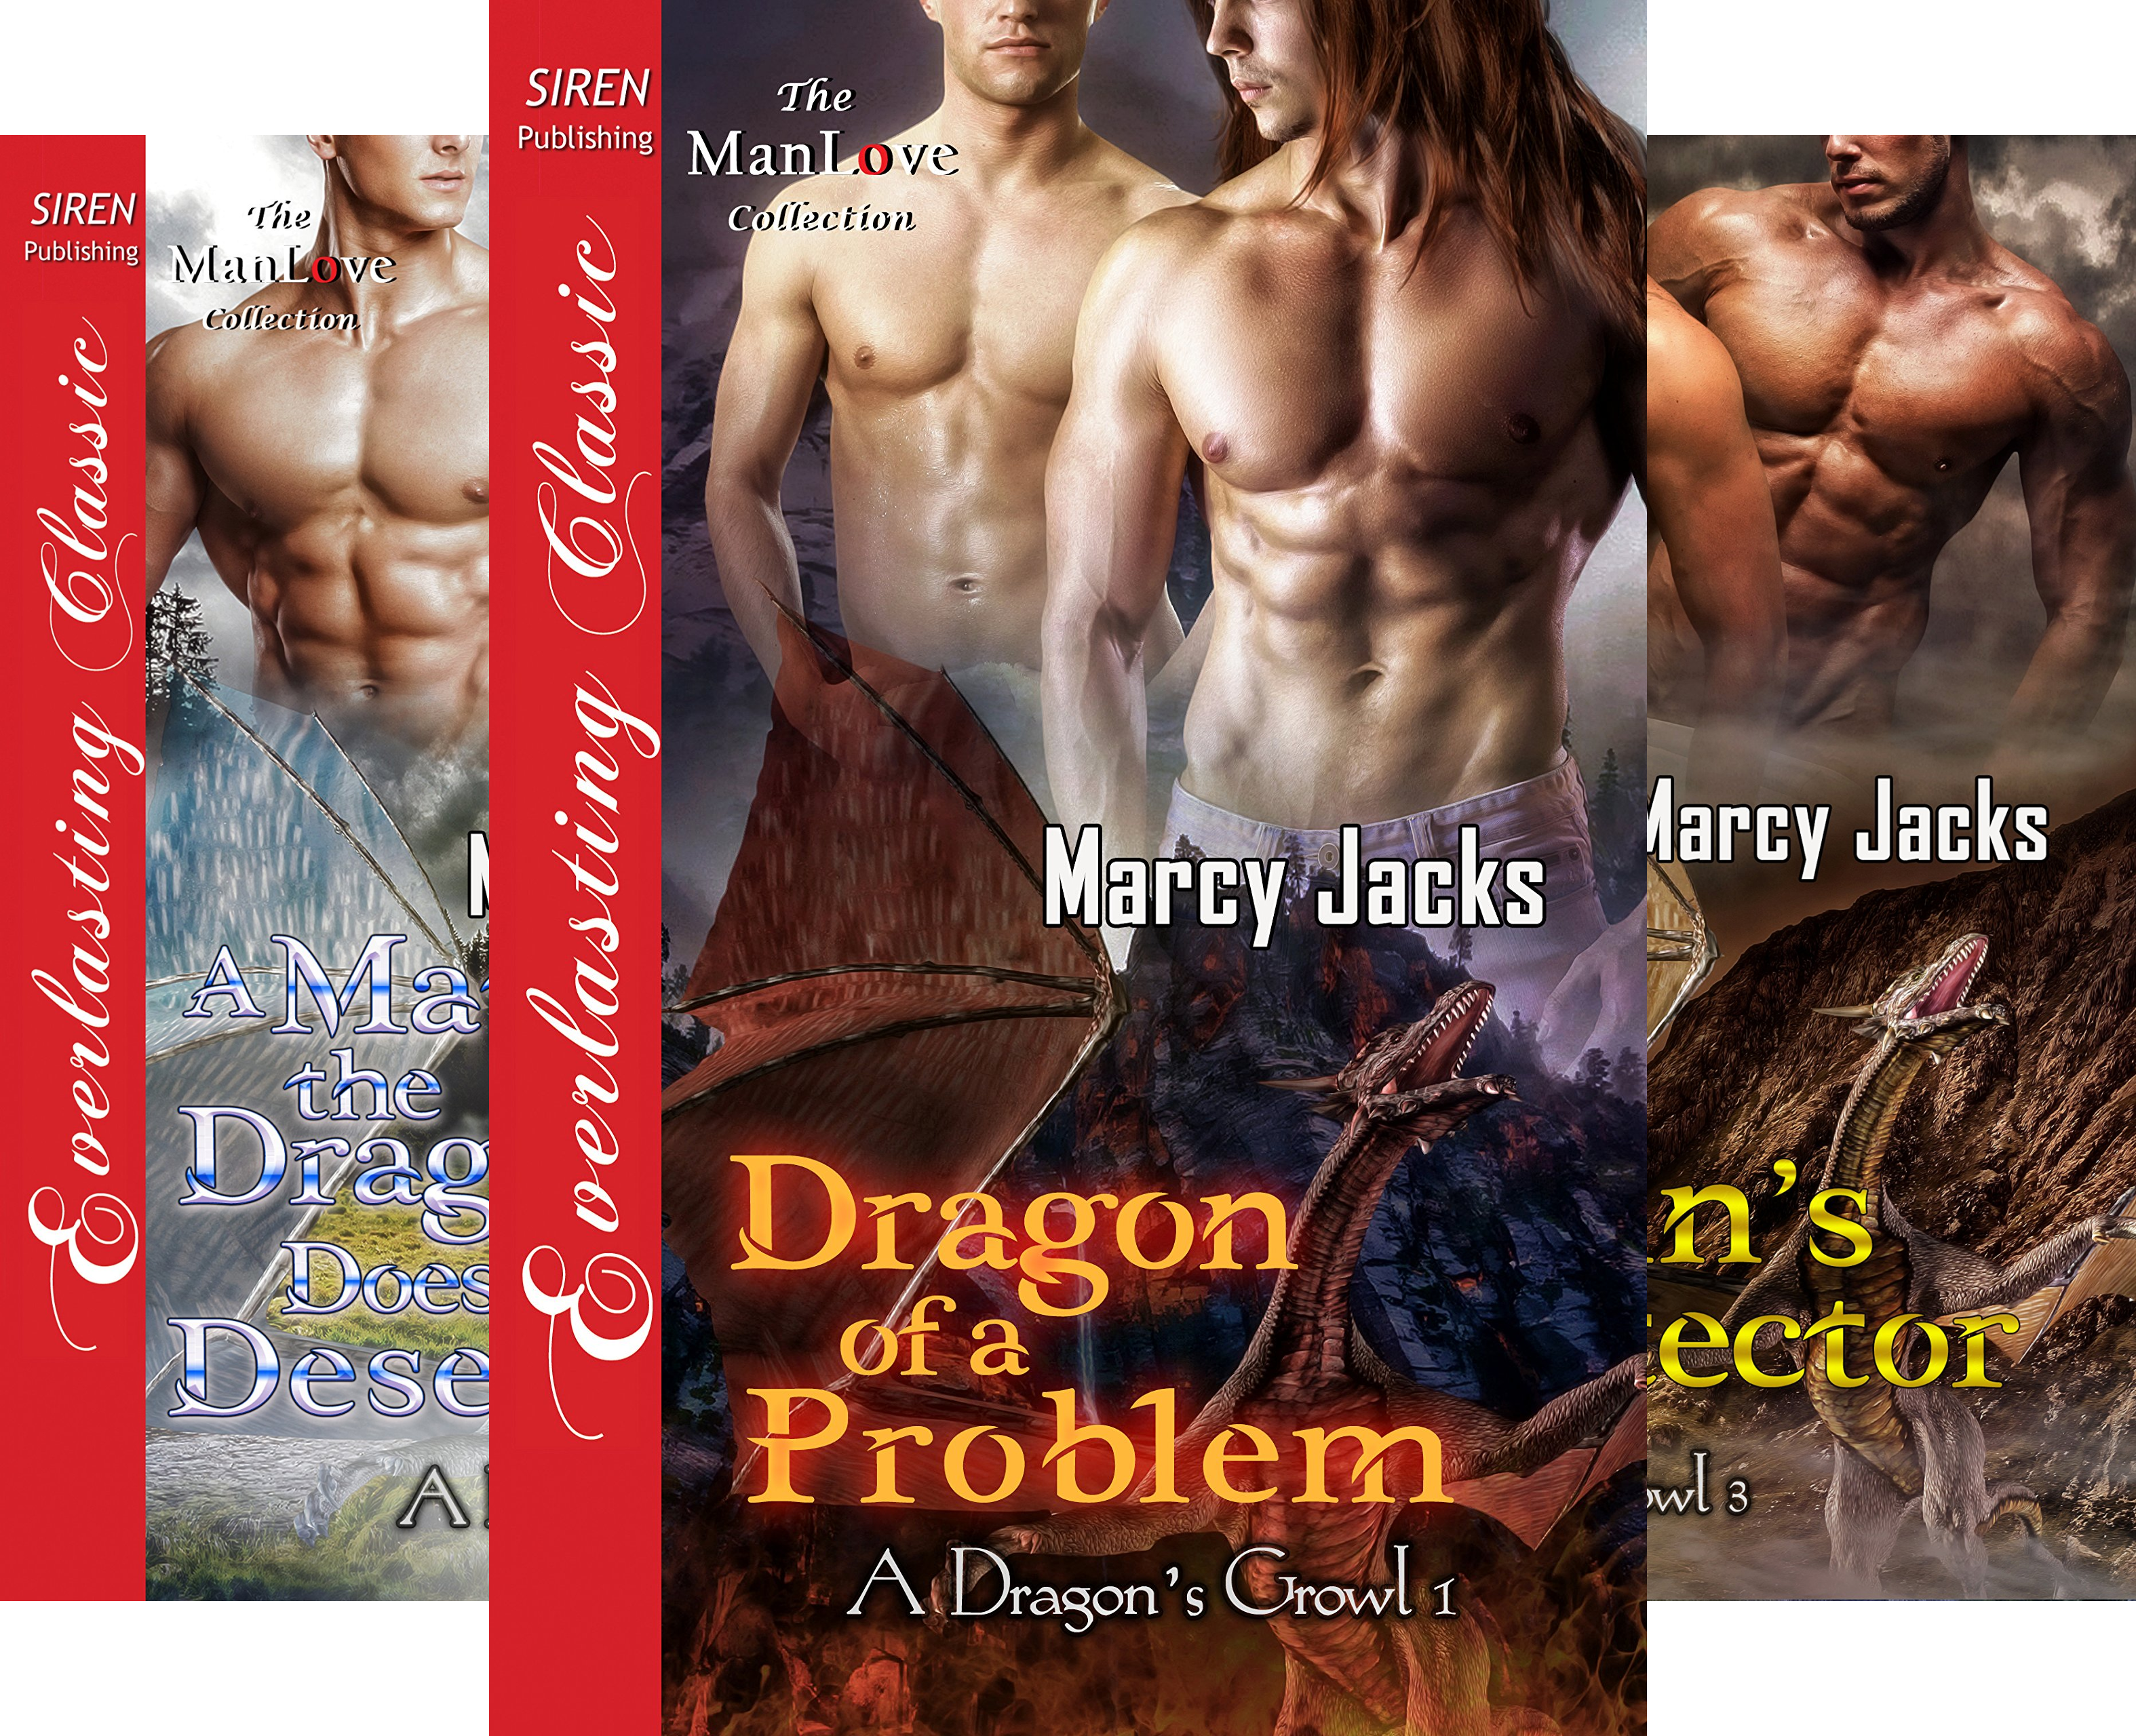 A Dragon's Growl (9 Book Series)